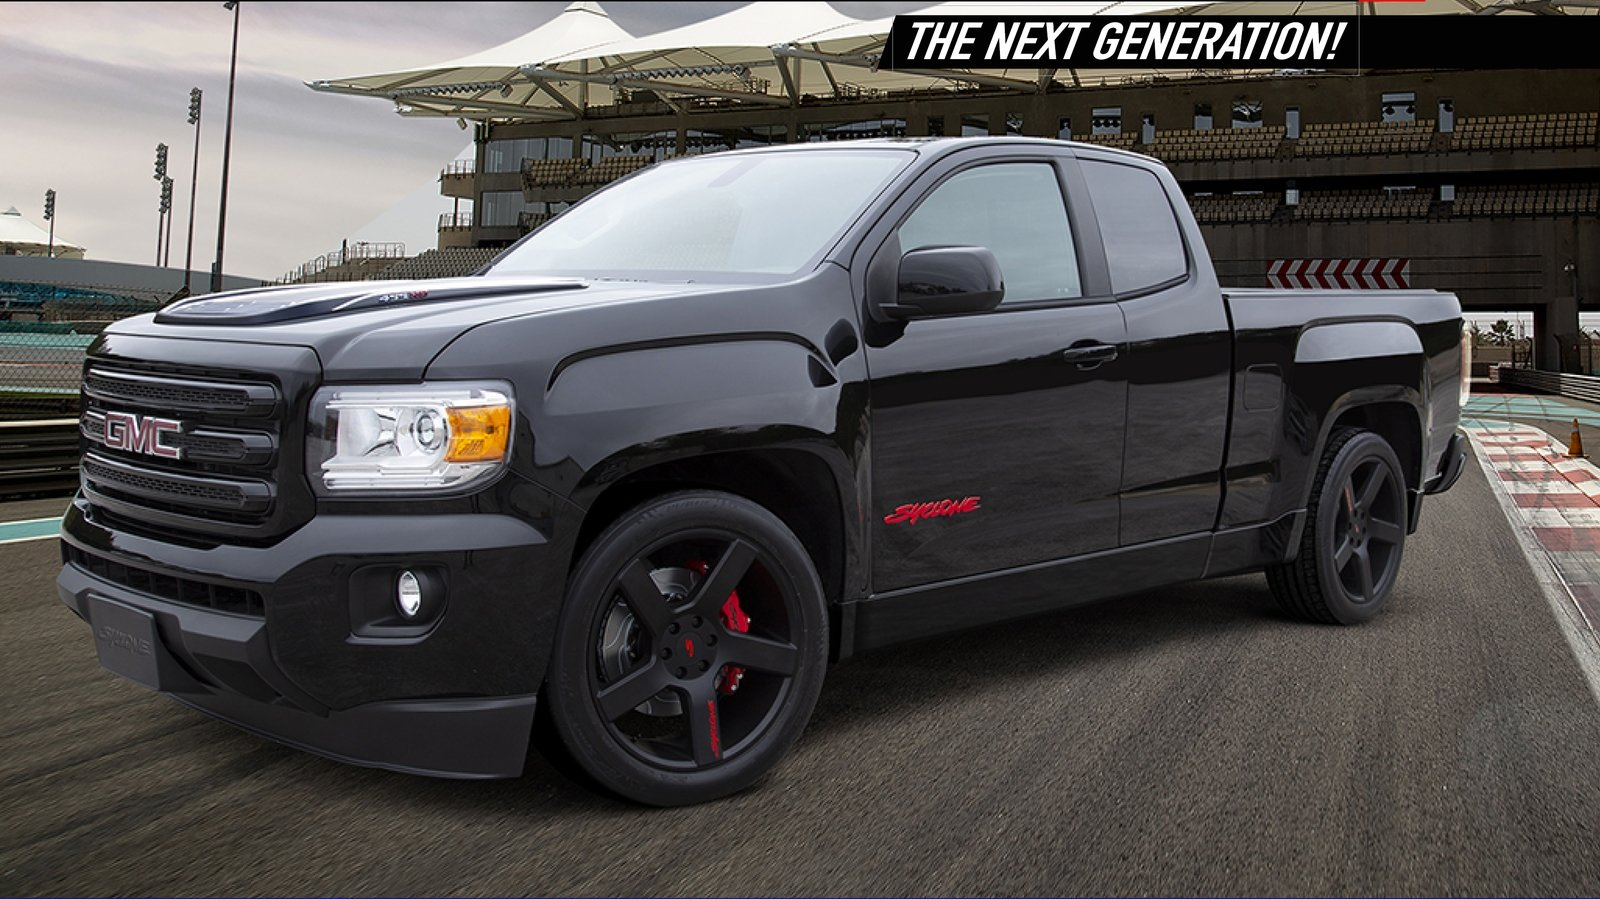 2019 GMC Syclone By SVE Pictures, Photos, Wallpapers ...